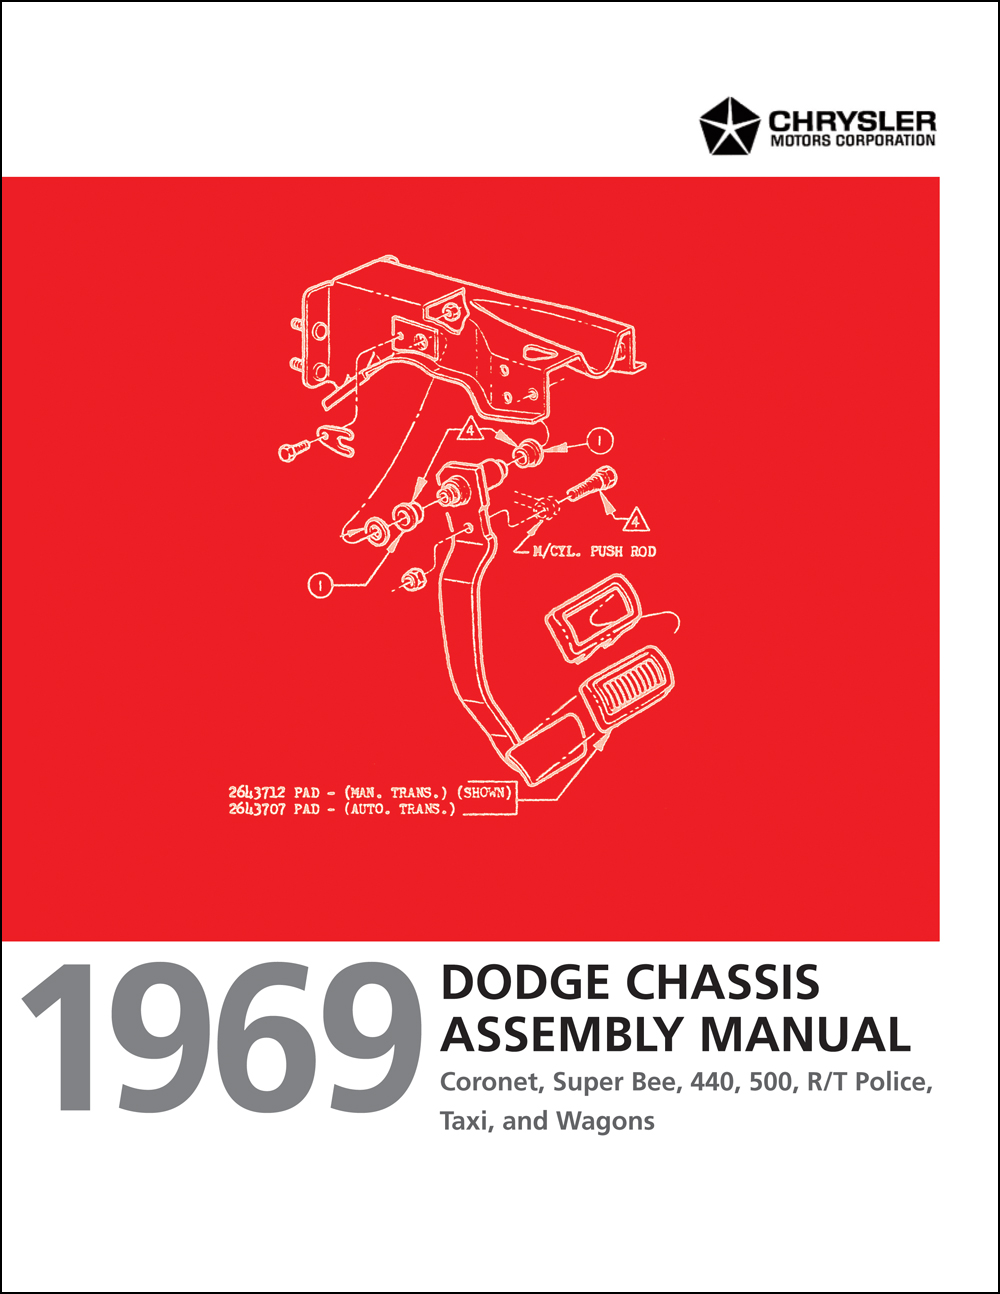 1969 Dodge Coronet and Super Bee Chassis Assembly Manual Reprint